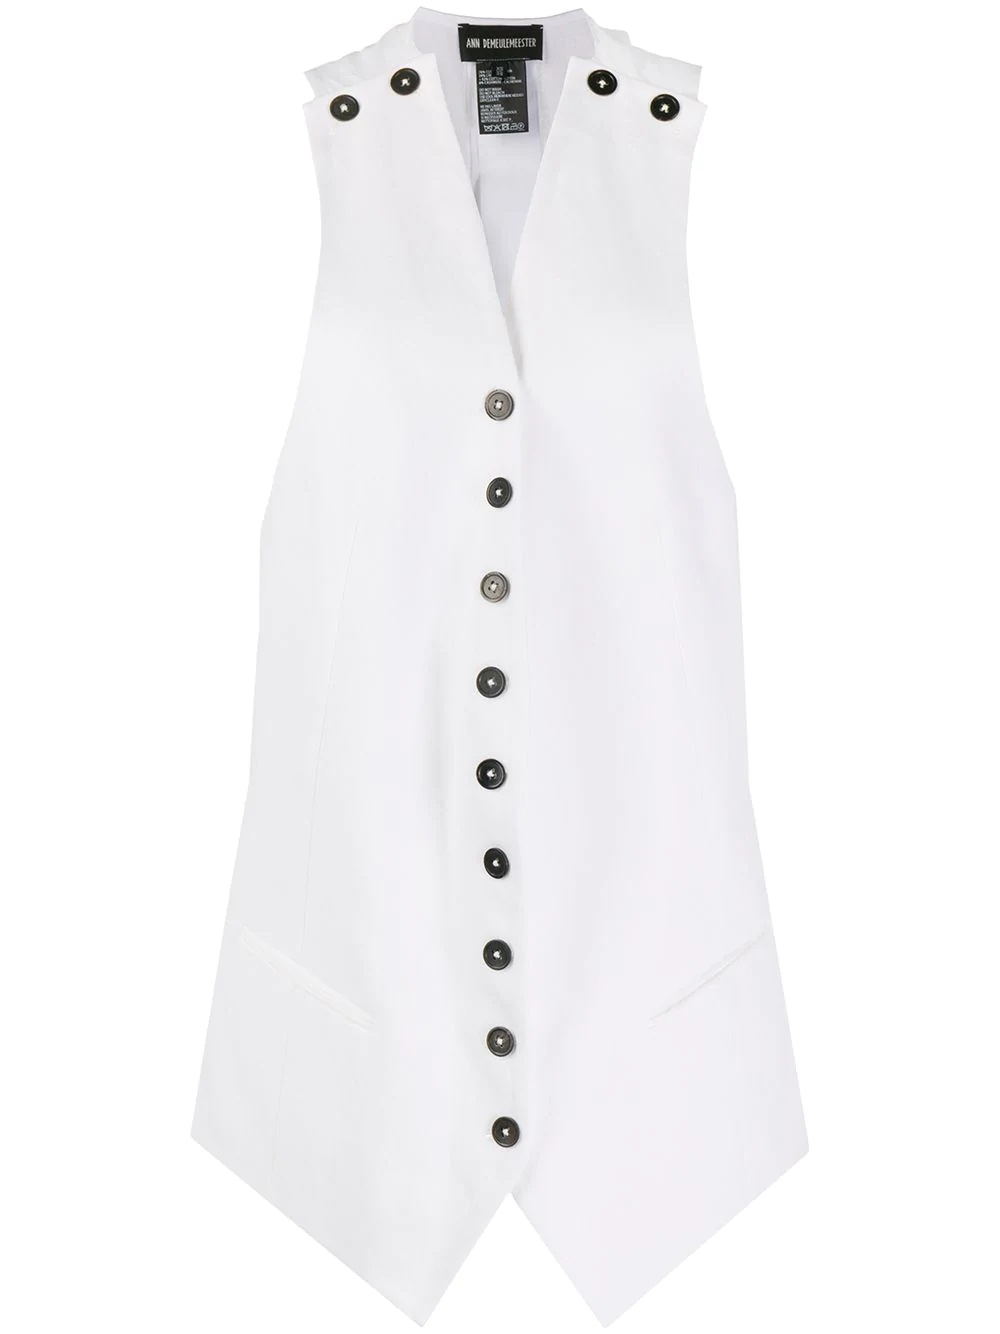 Gilet lungo bianco ANN DEMEULEMEESTER | Cappotto | 2001-1152-P-195001